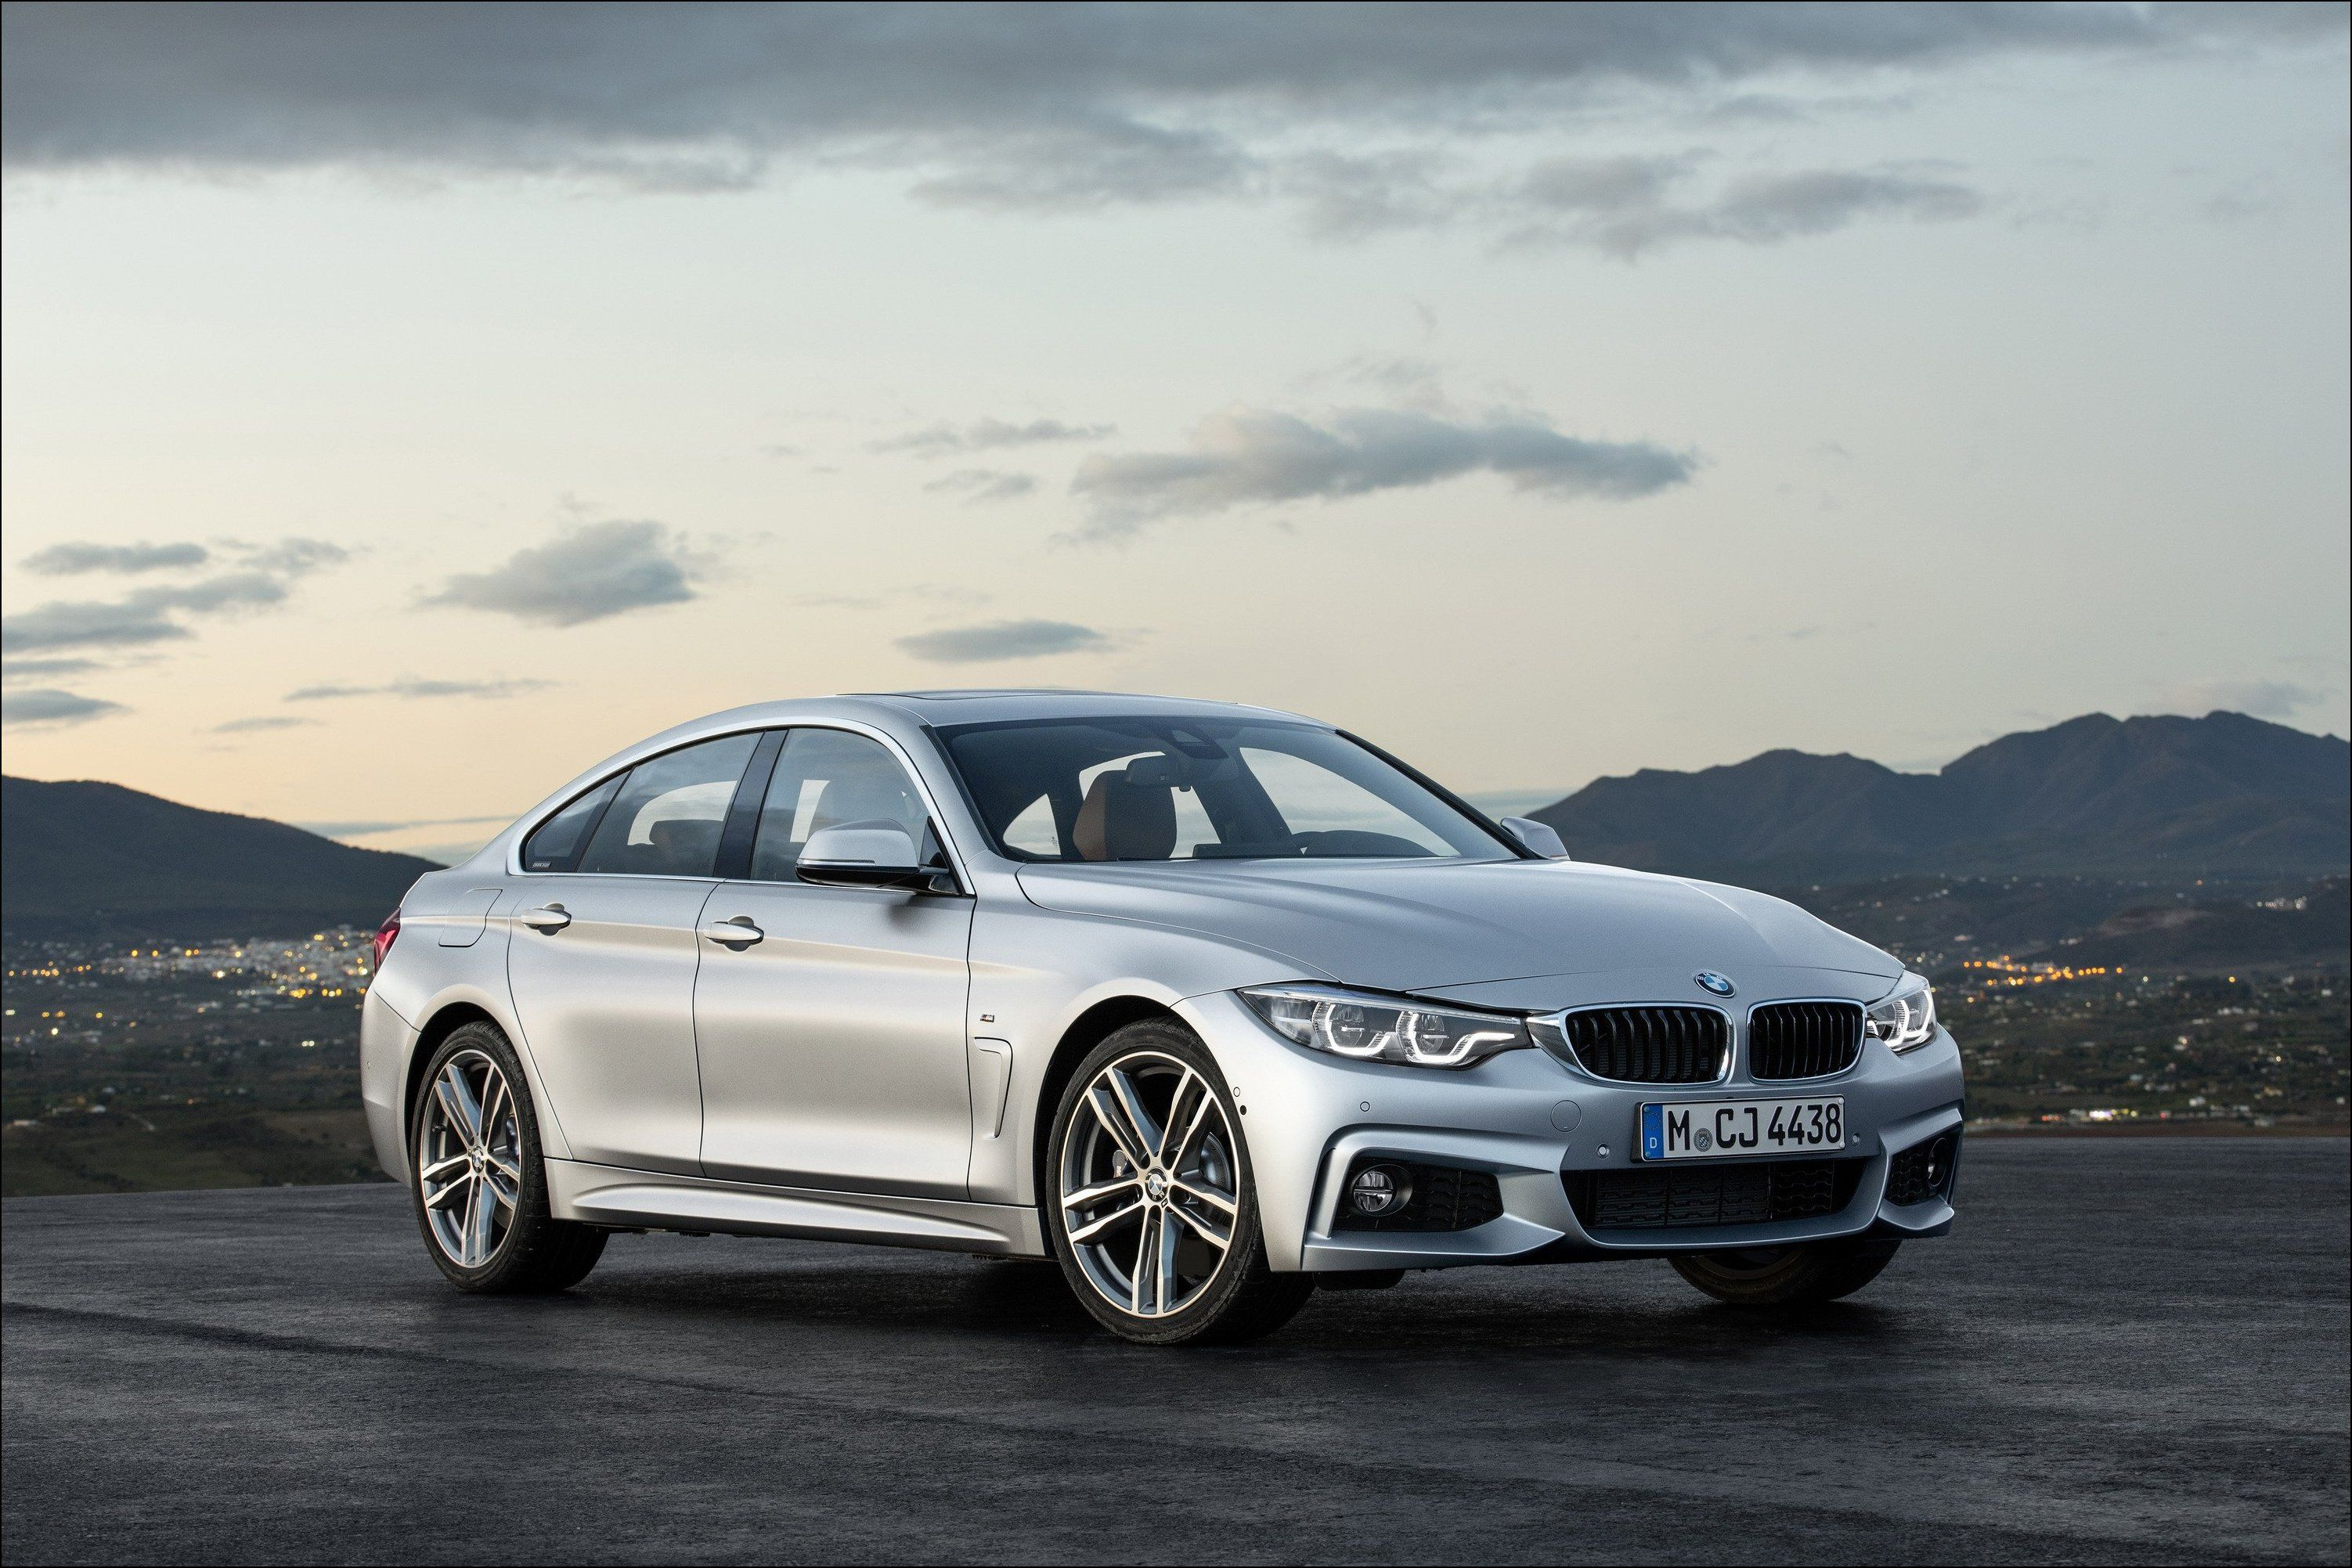 The Best 2020 Bmw 4 Gran Coupe Review Bmw 4 Series Bmw Bmw 4